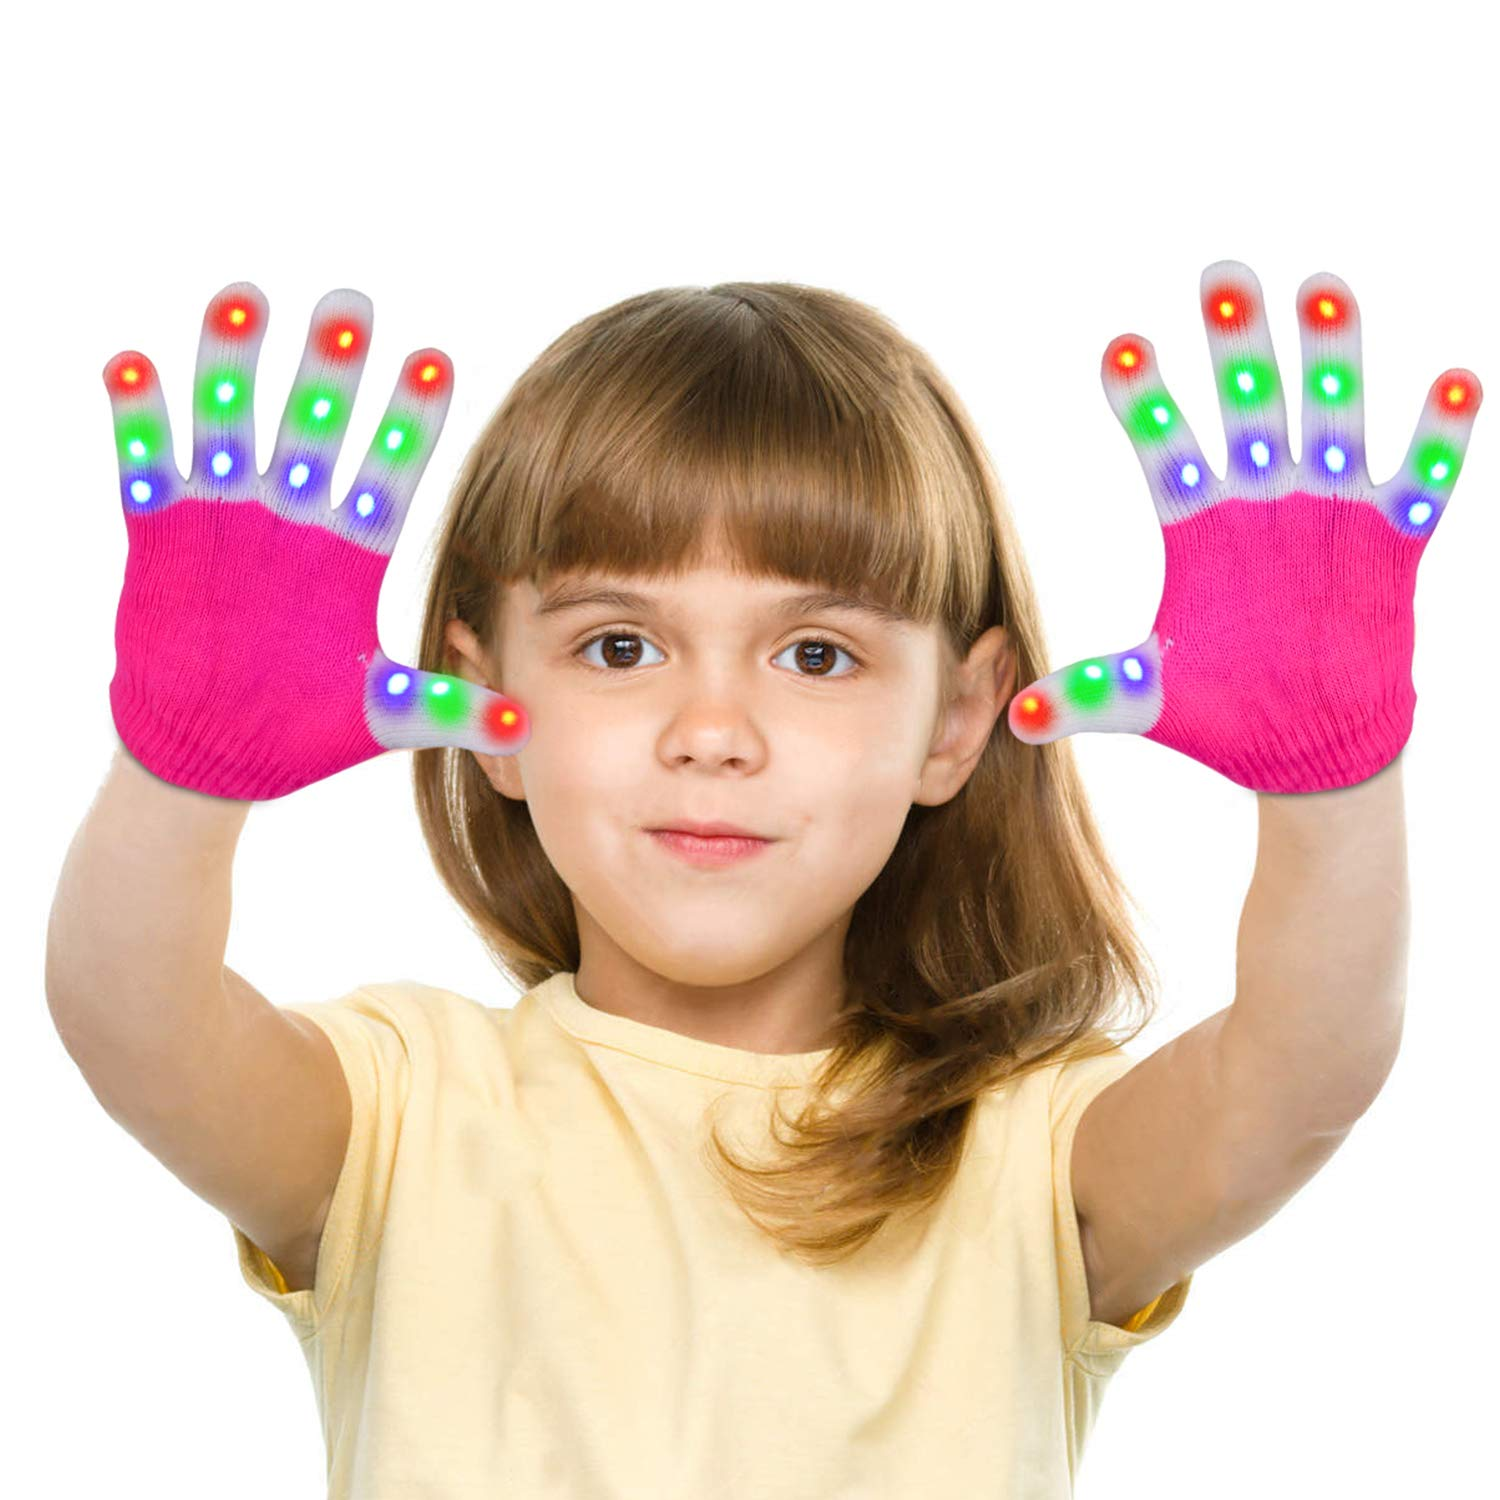 LED Gloves Yostyle Flashing Light up Gloving Colorful Fingers Gloves Sets Glow battery powered Best Gifts for Novelty Game Light Show Halloween Costume Rave Concert Birthday Party Favors,Gifts (Children Pink-6 Modes 3 Colors 15Hrs )